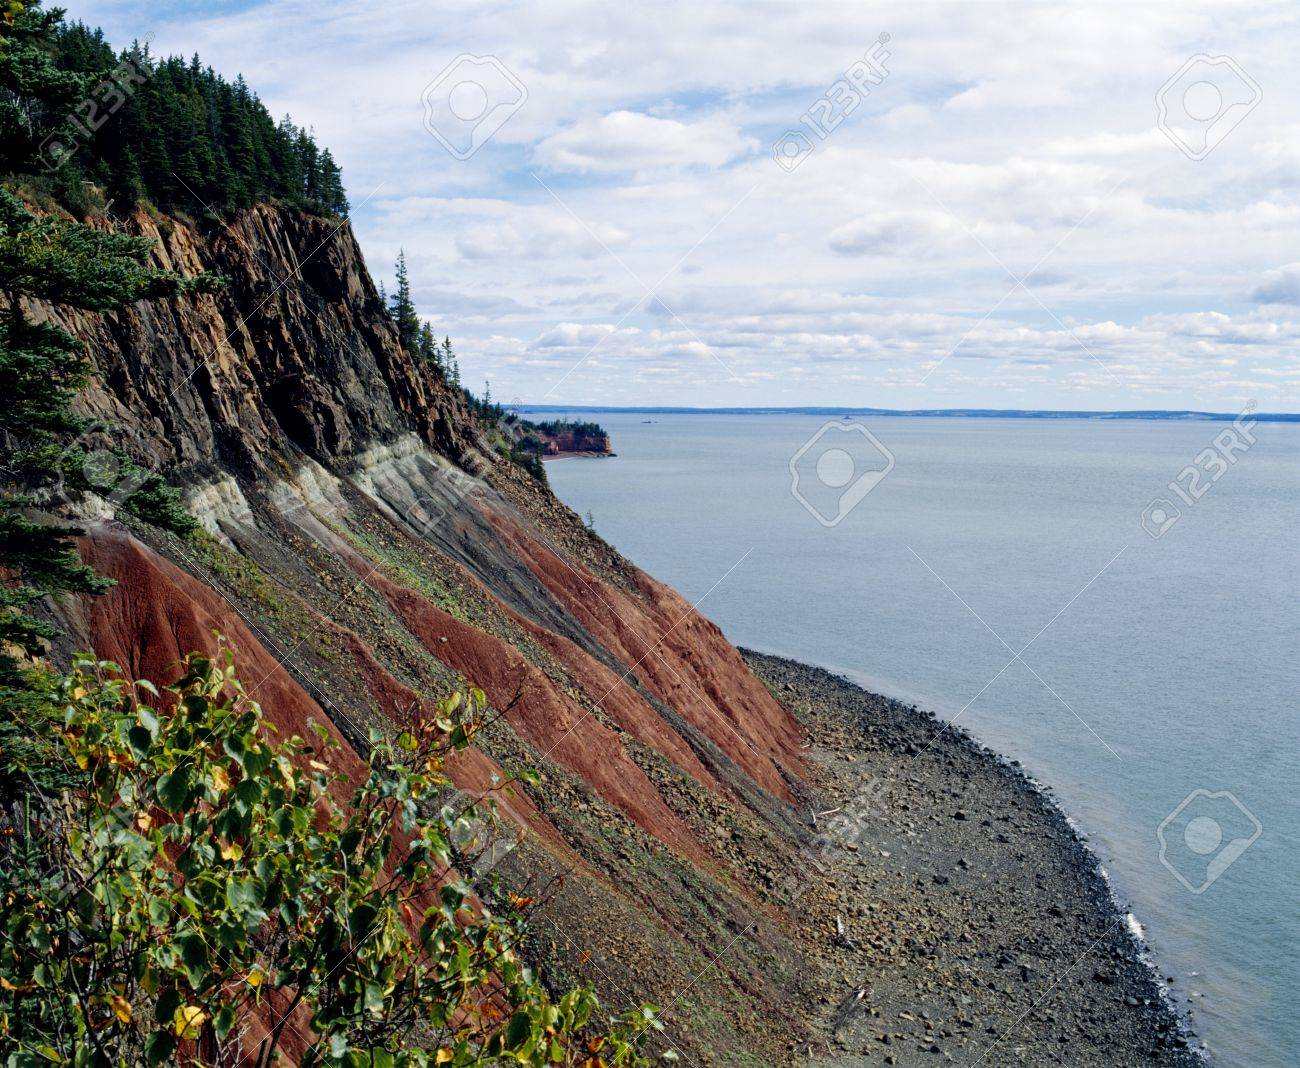 Bay of Fundy, Nova Scotia, Canada Stock Photo - 7210185